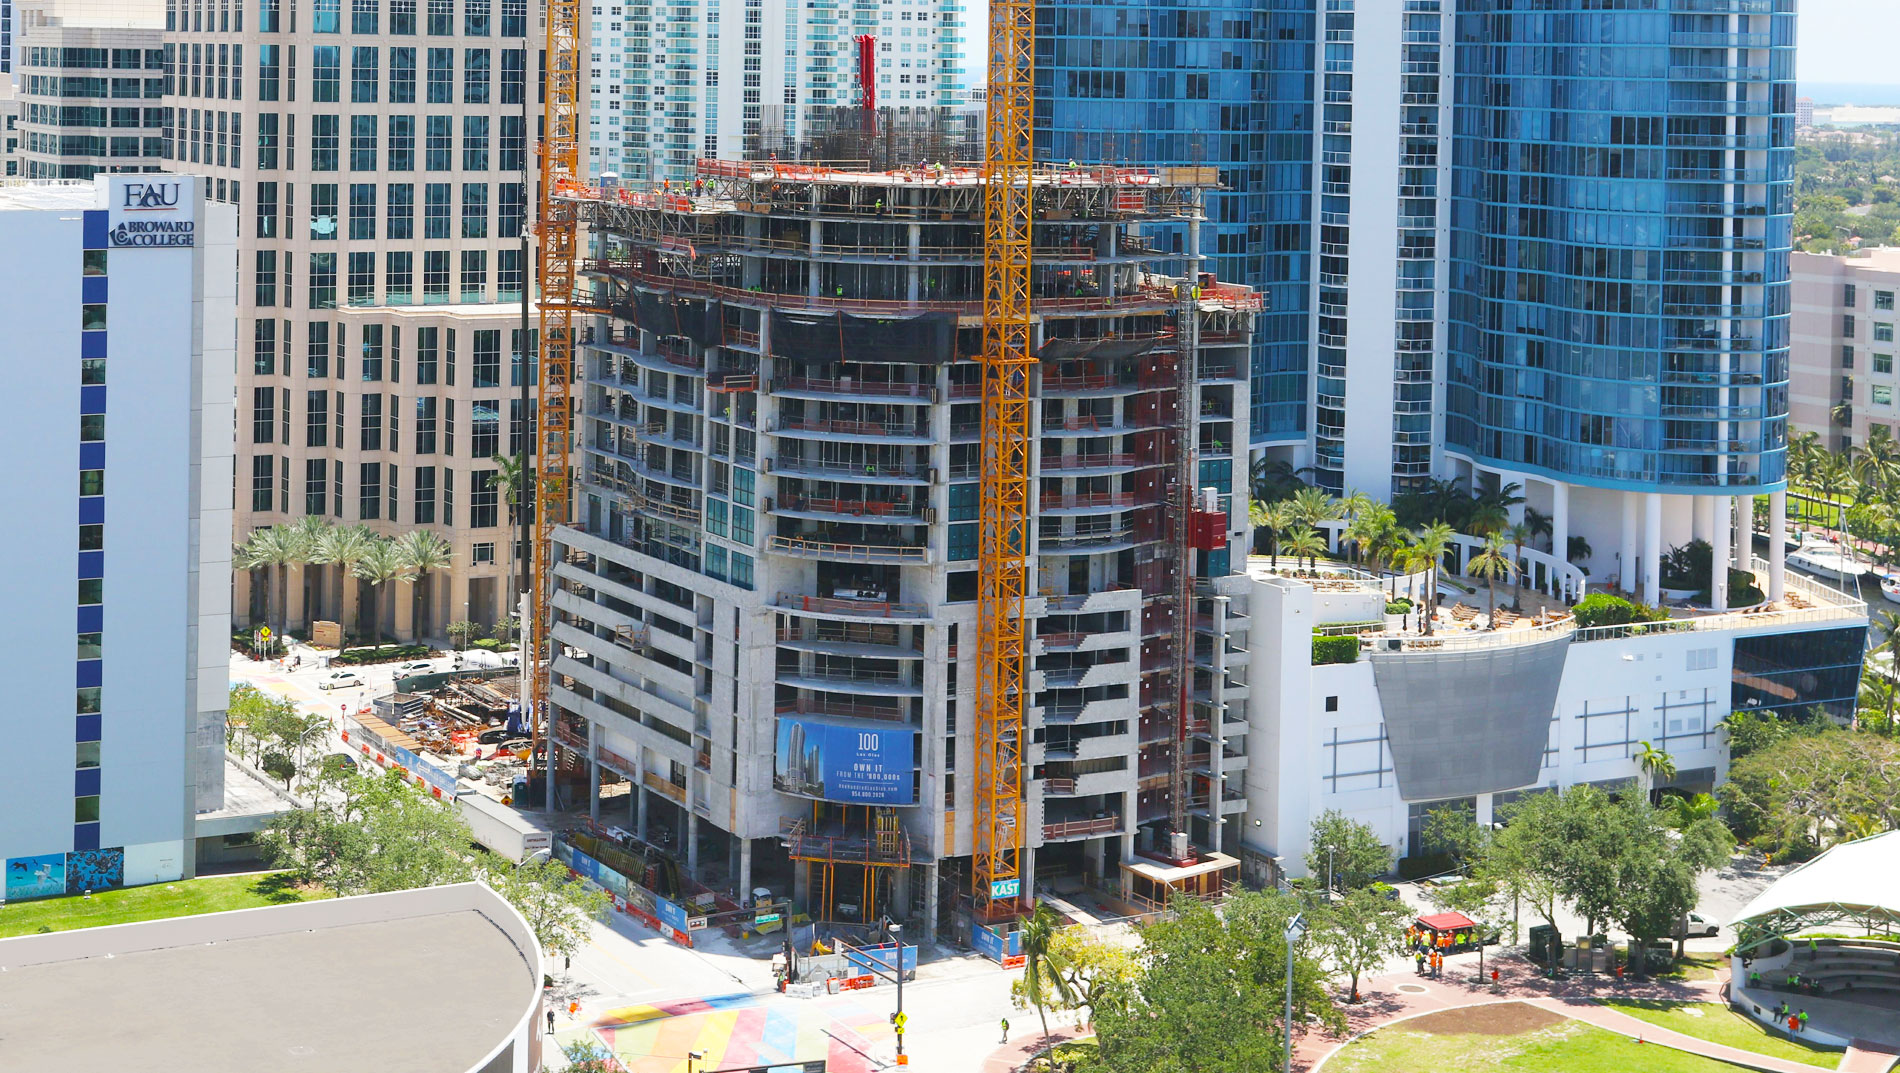 May 2018 100 Las Olas Aerial Construction Shot